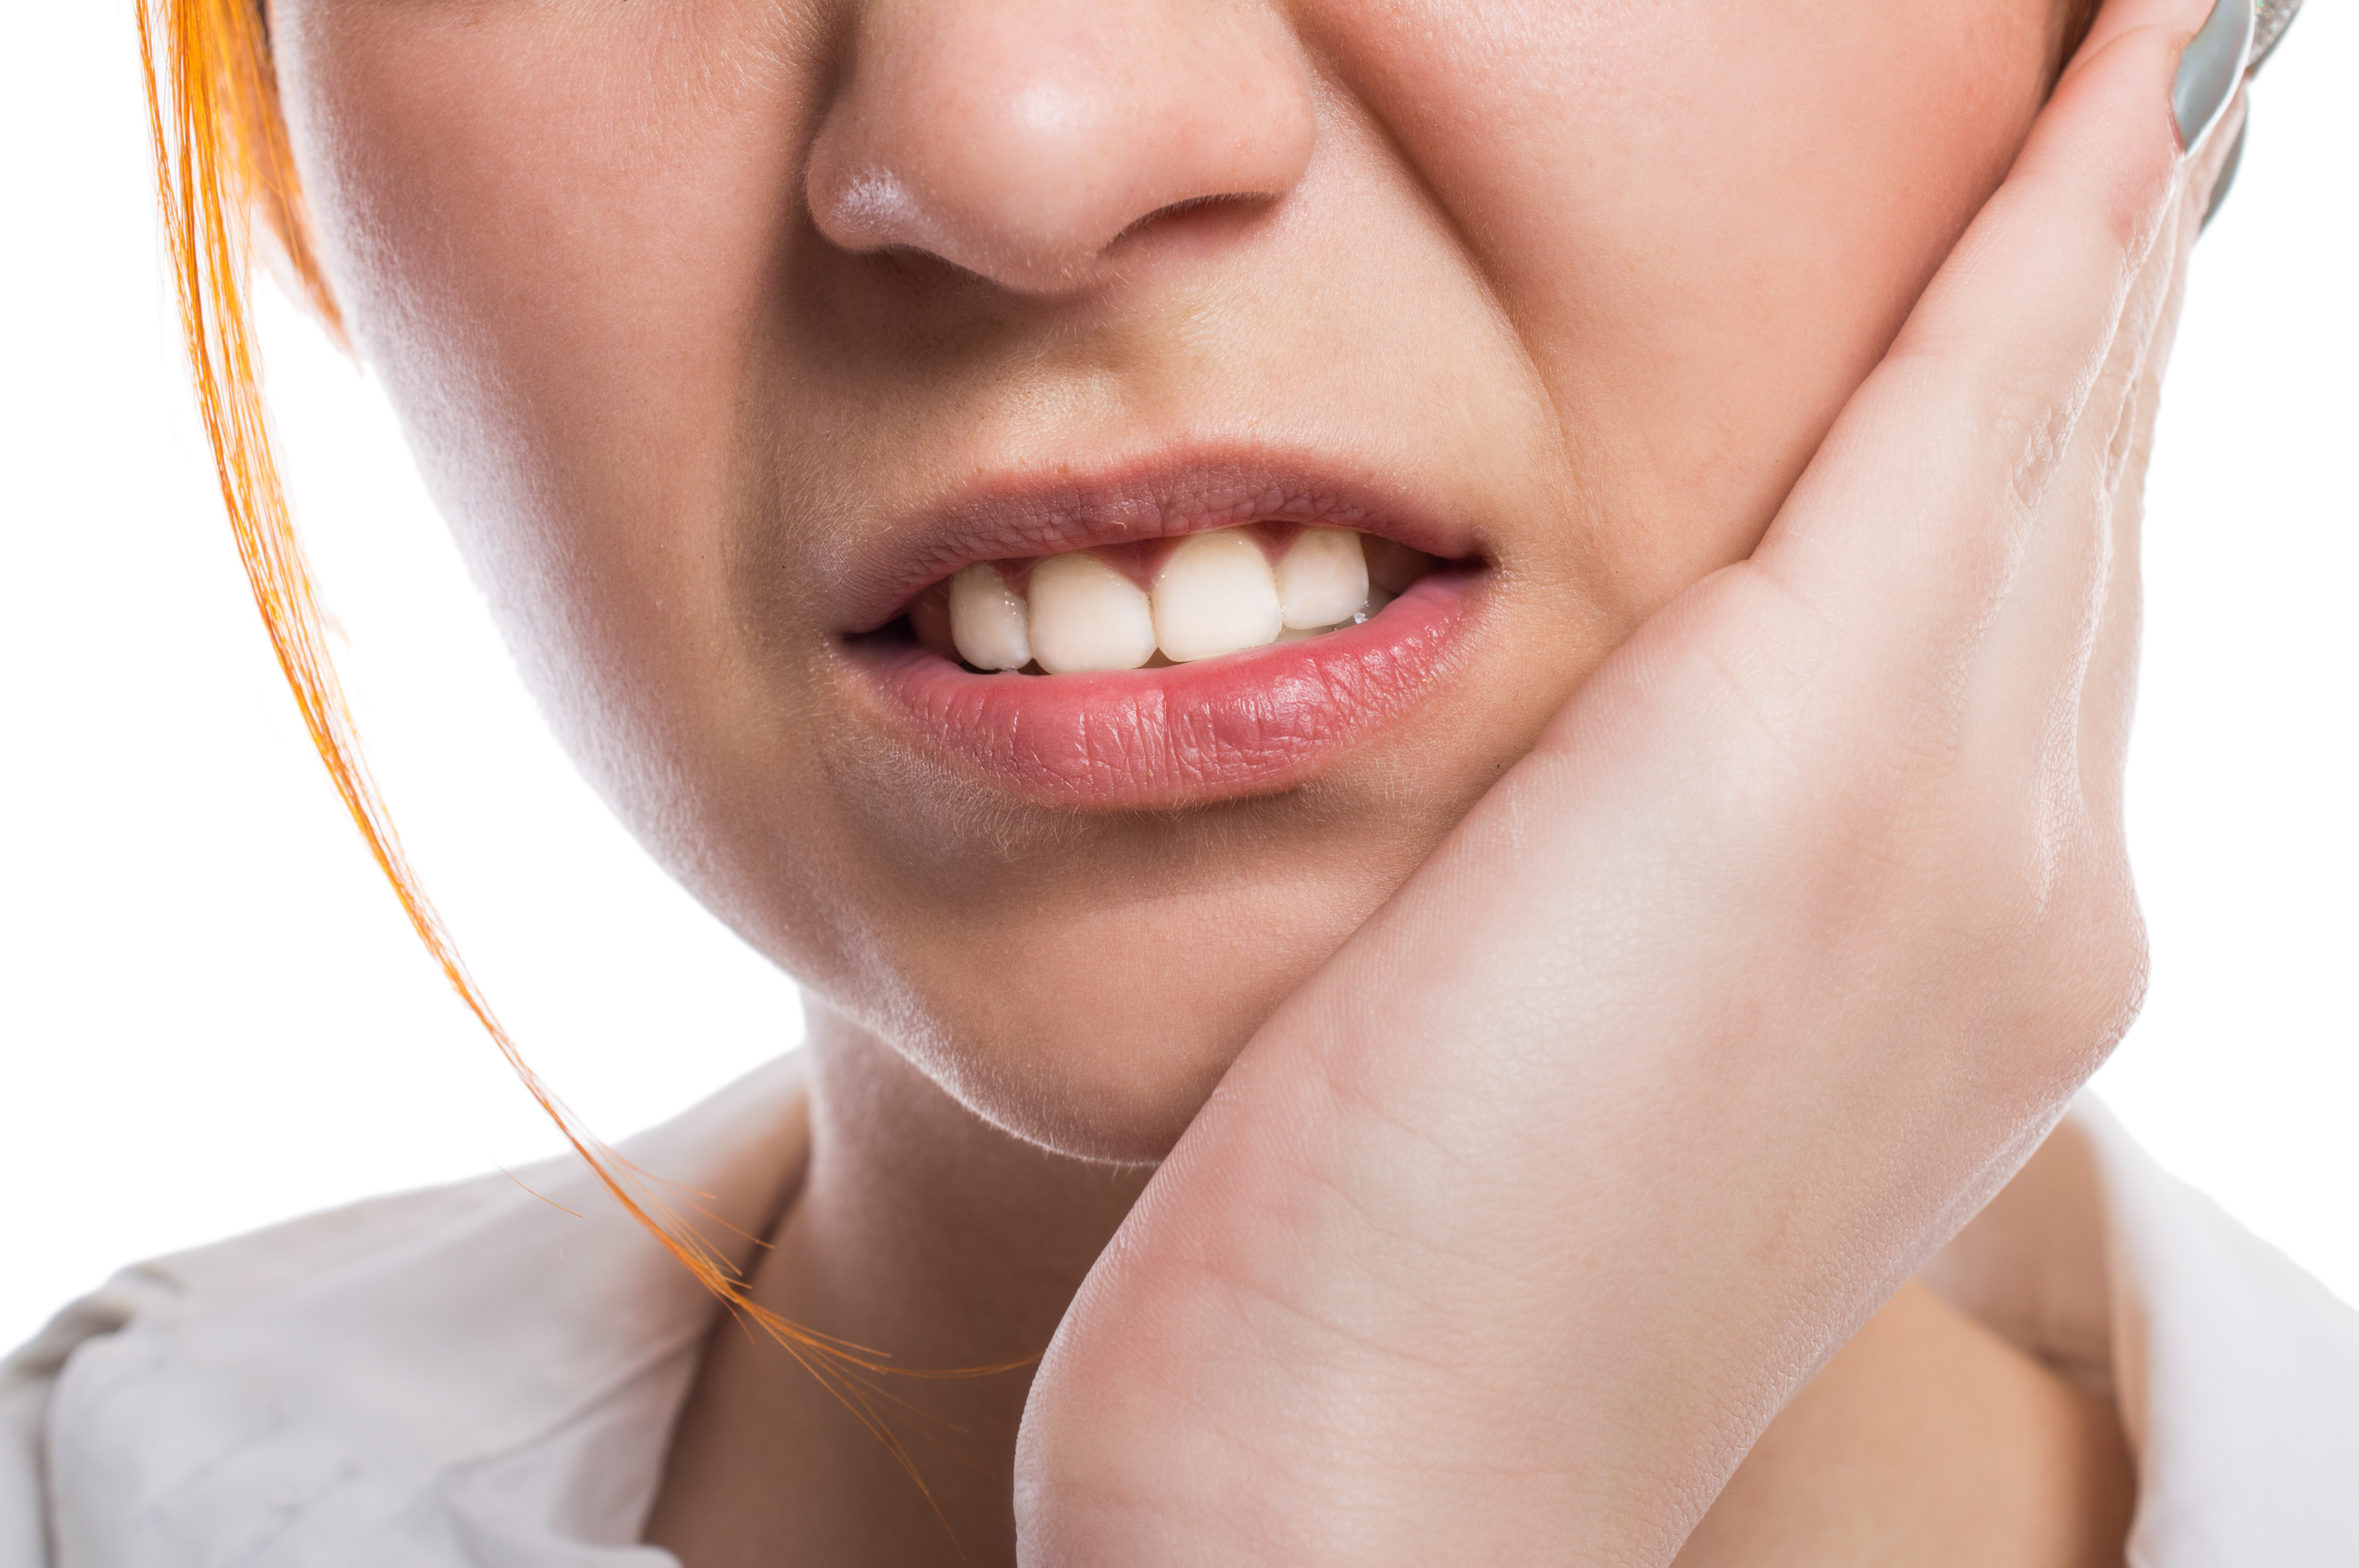 Molar Pain | 5 Causes of Molar Teeth Pain, Treatment & More